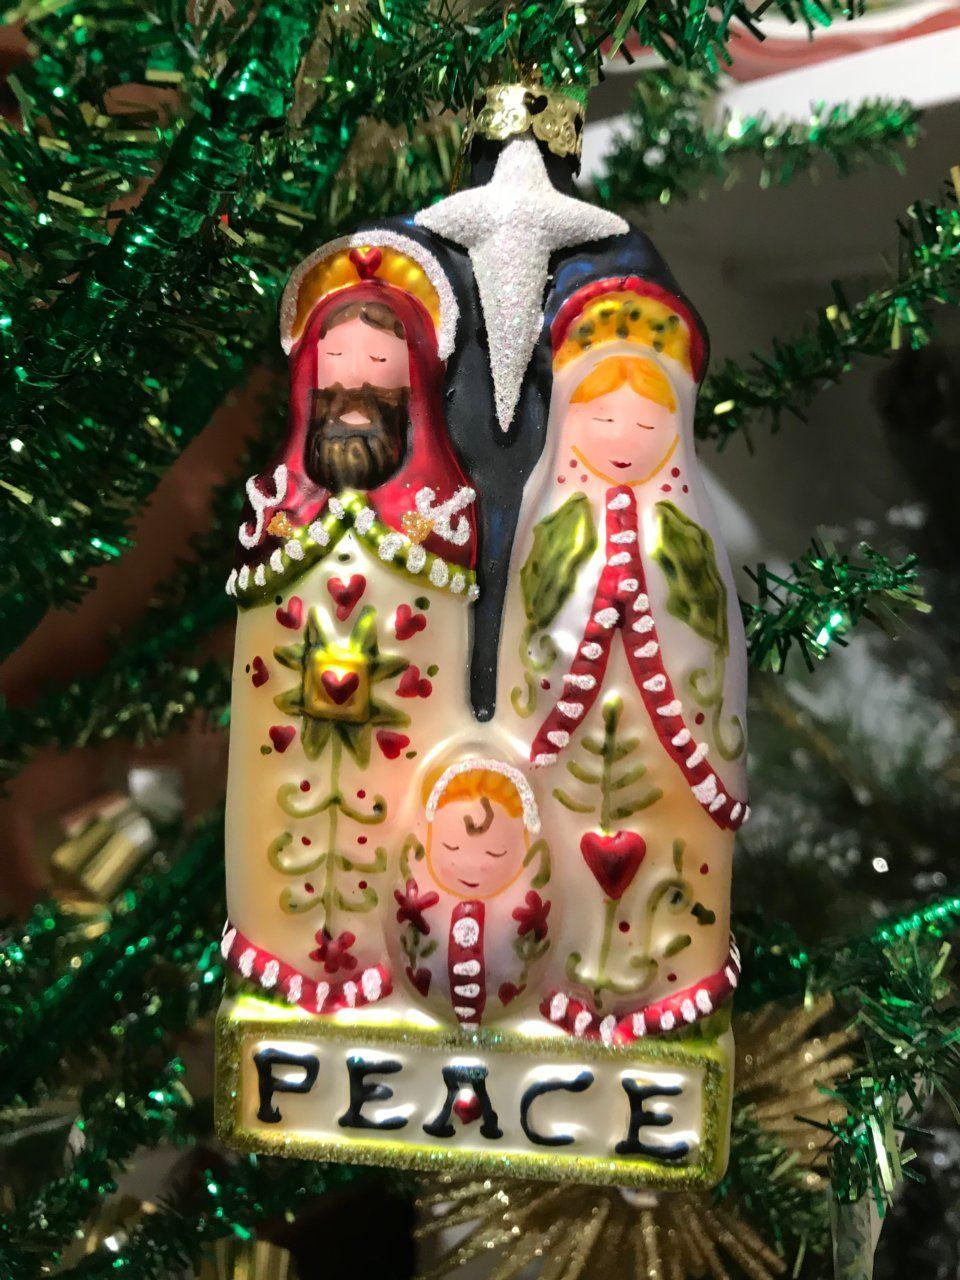 Peace Christmas Ornament.Live With It By Lora Hobbs Exclusives Christmas Ornaments Peace Holy Family Ornament Price 15 00 In Peckville Pa From Live With It By Lora